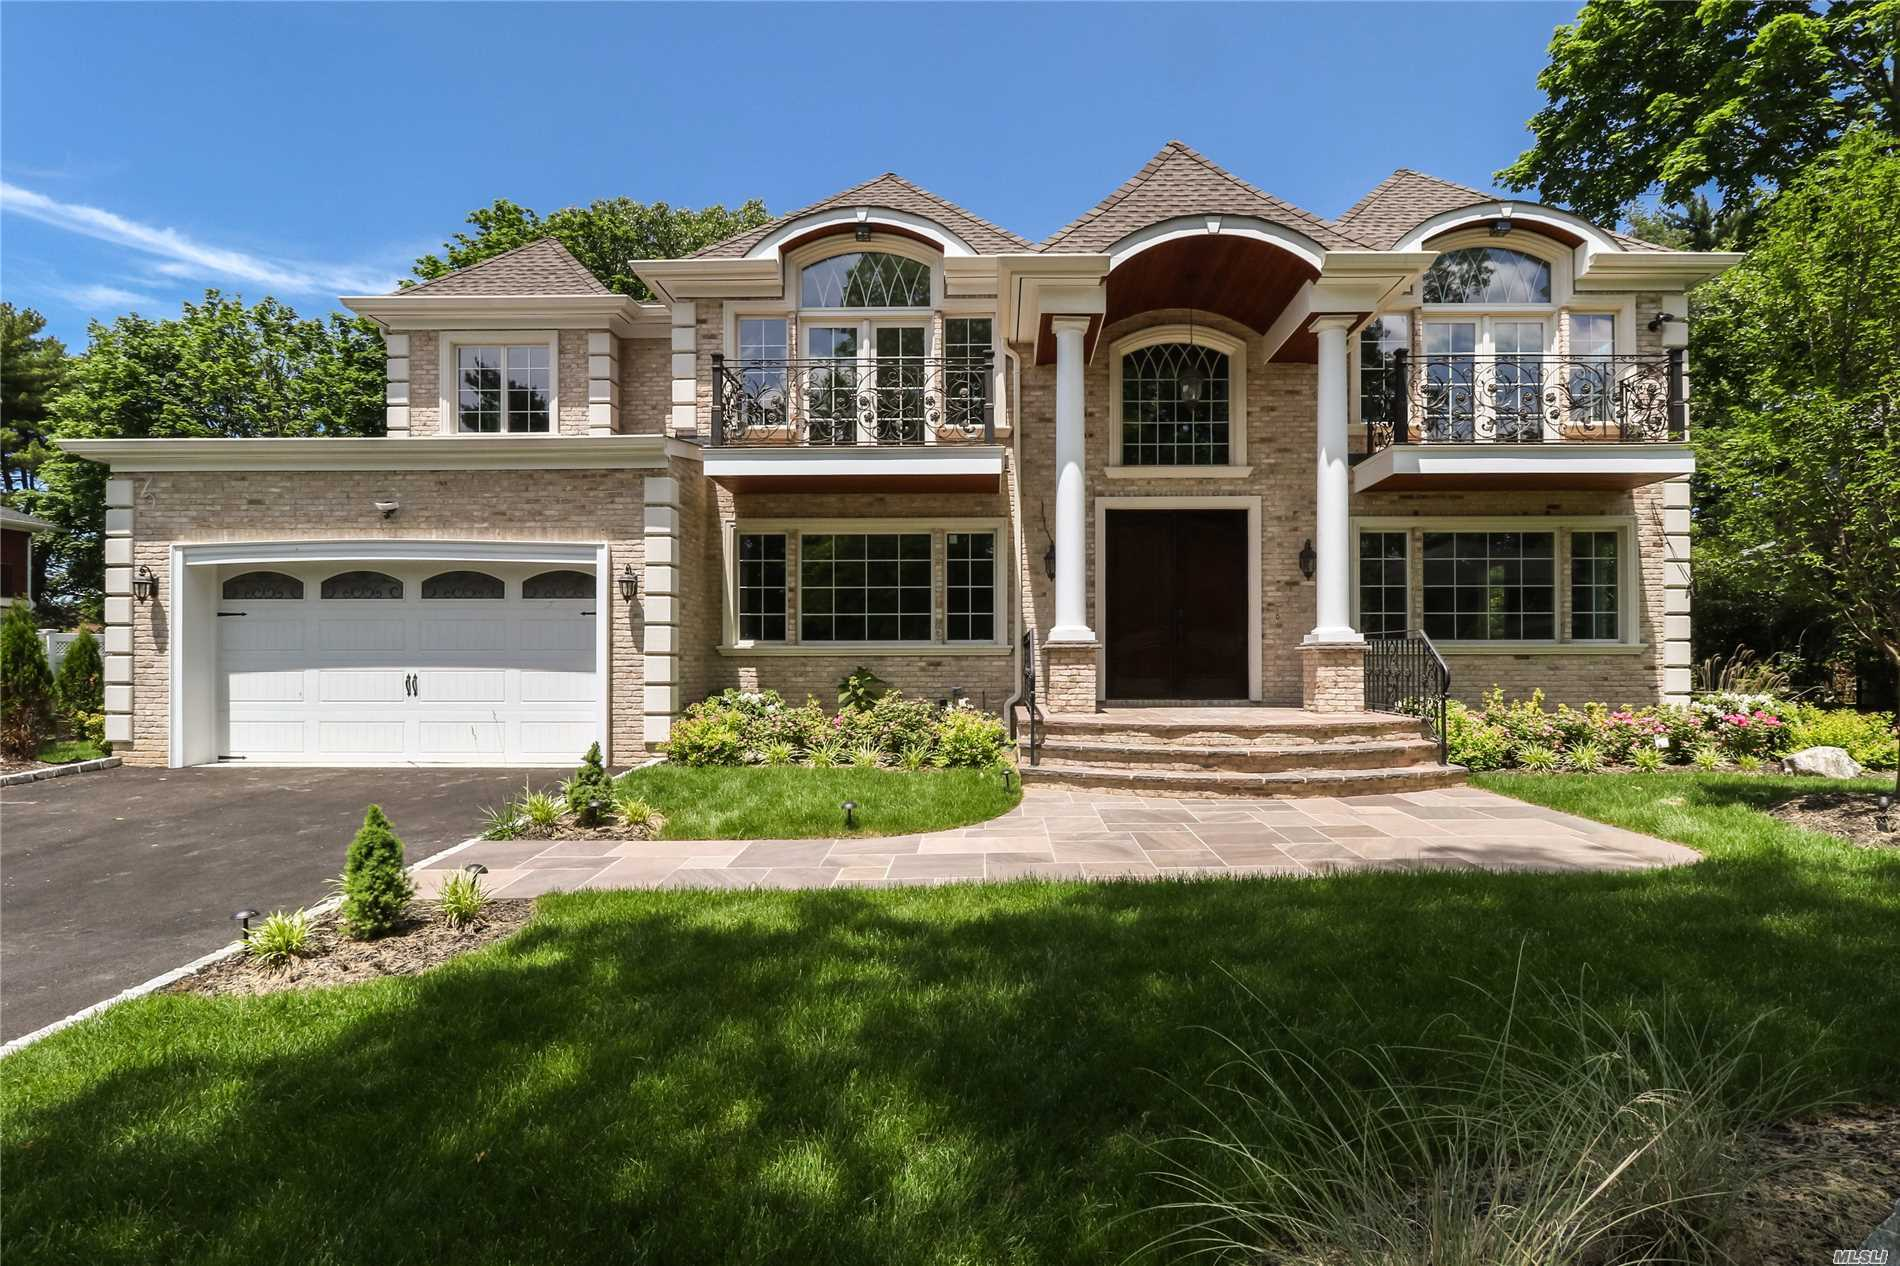 Roslyn Heights, Country Club. Stunning Open & Spacious 2017 All Brick Colonial Offering 6 Bedrooms, 5.5 Baths, Finished Basement W/ Full Bth, Hi Ceiling & Separate Entry Way From Backyard. Generator, Wired As A Smart Home For Security Camera/Stereo & Remote Wifi Enabled Key-Less Entry. Custom Built Chef's Kitchen W/ Viking Appliances, Customized Paneling, 60 Freezer/Refrigerator. Designer Master Bth W/ Make Up Vanity, Over-Sized Backyard & Patio With Option To Build A Pool (Plans Approved).